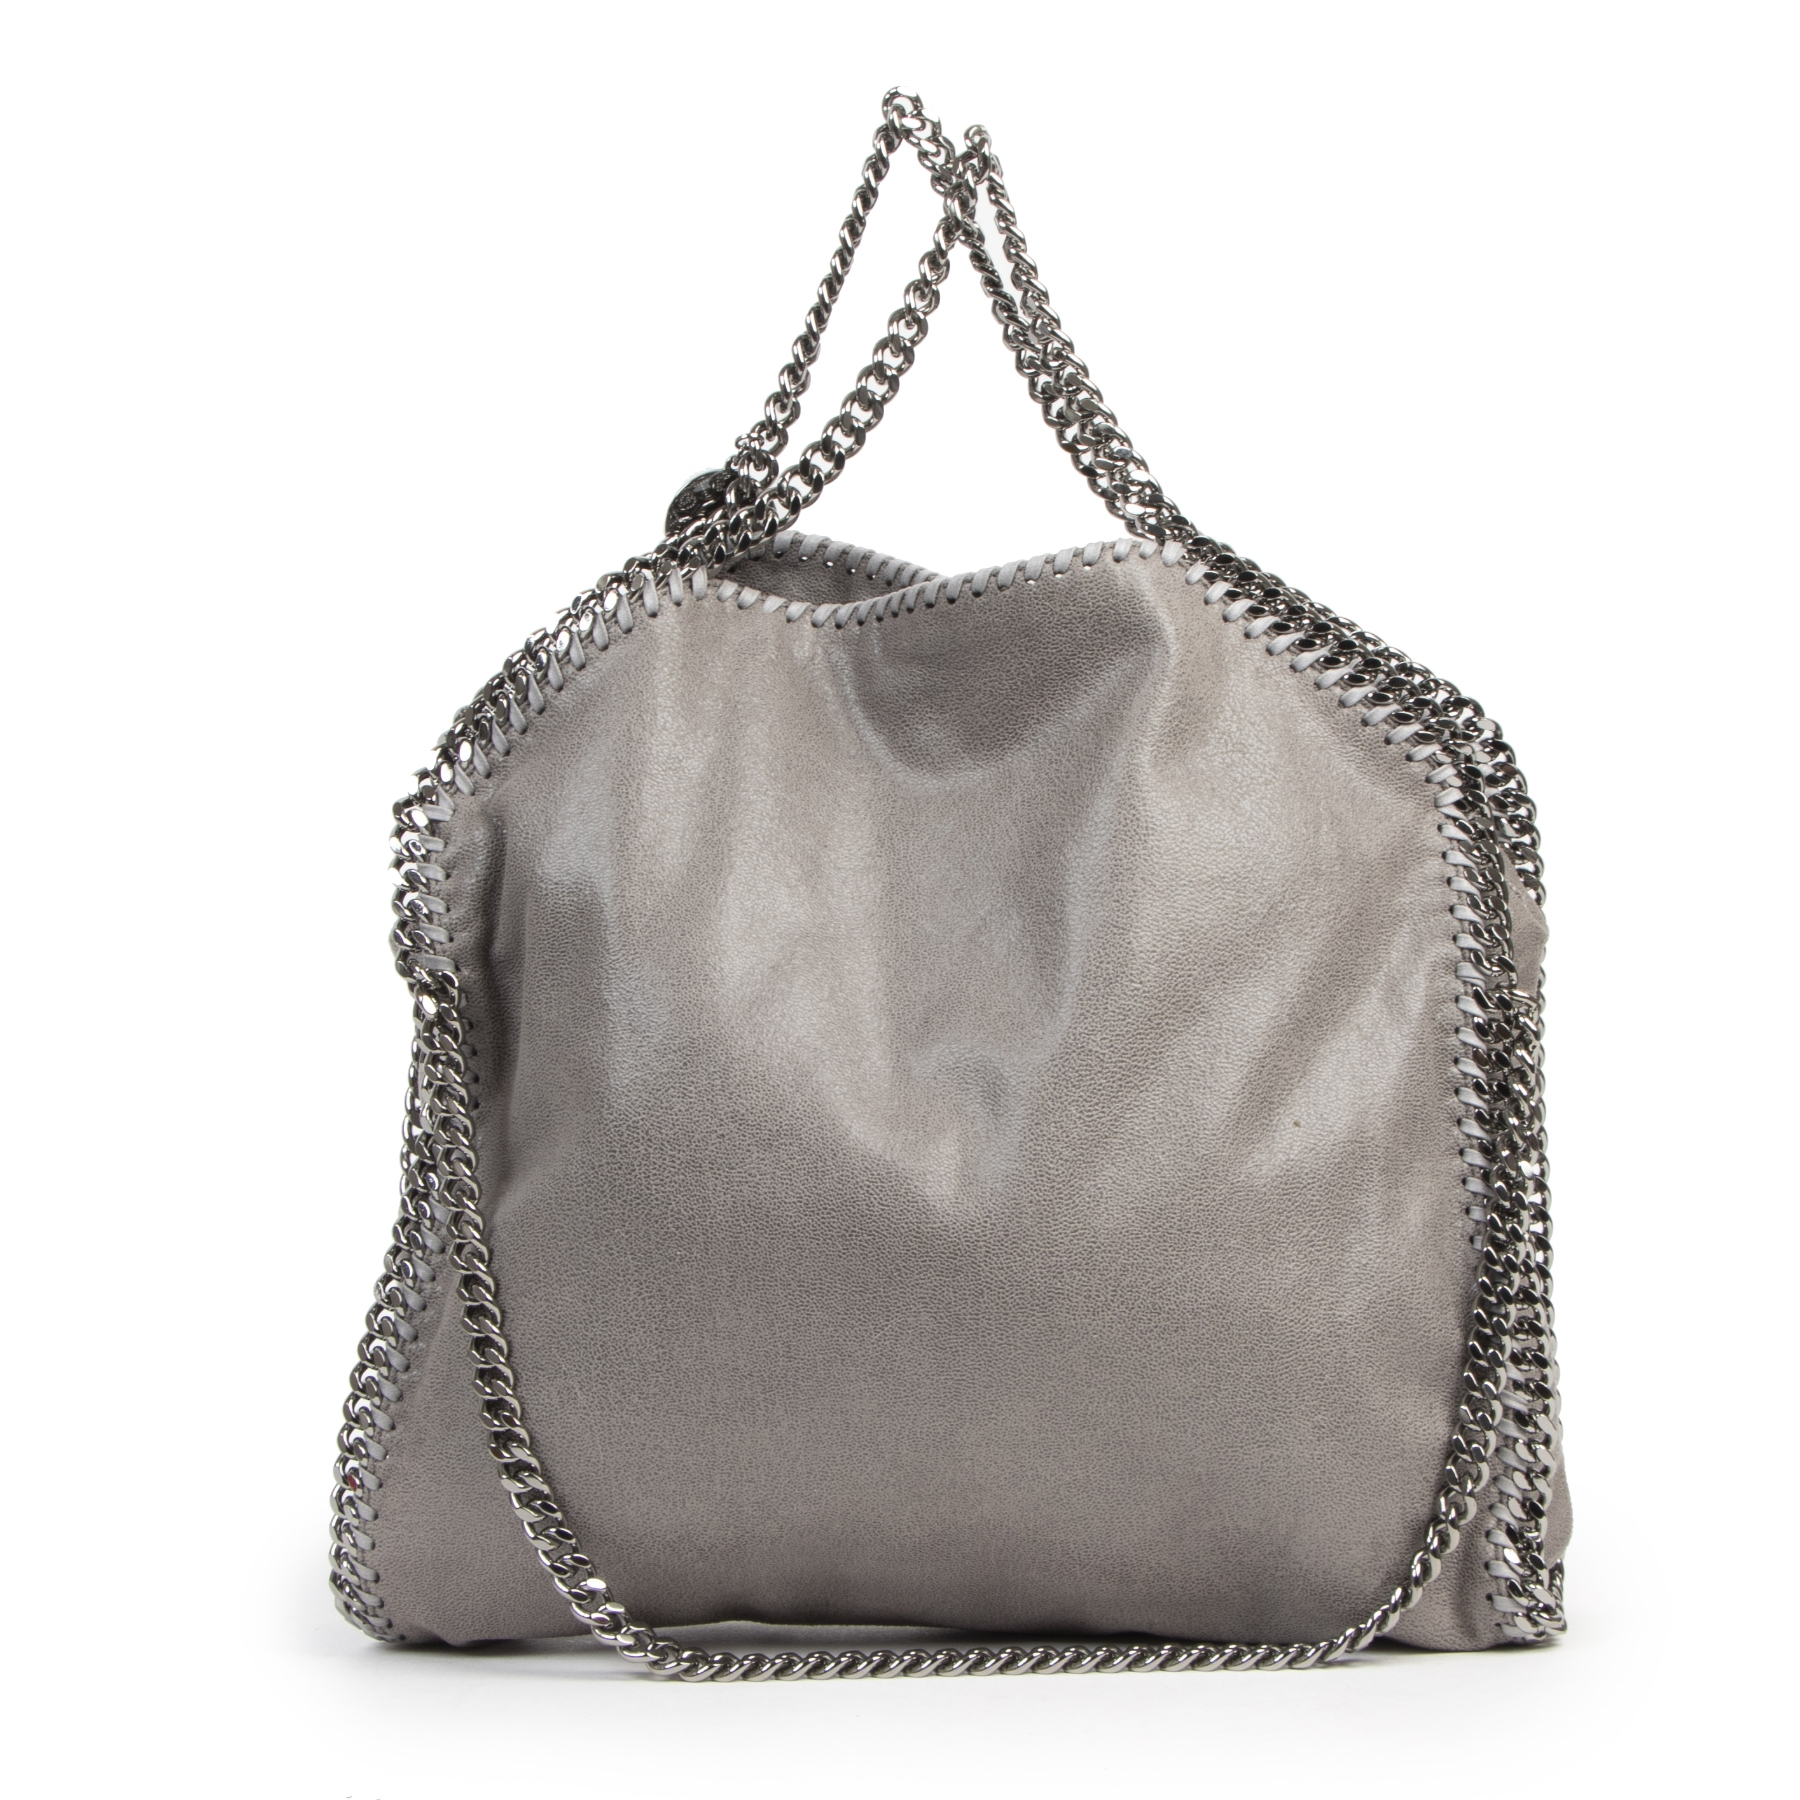 Authentic secondhand Stella McCartney Grey Falabella Shoulder Bag designer bags fashion luxury vintage webshop safe secure online shopping high end brands